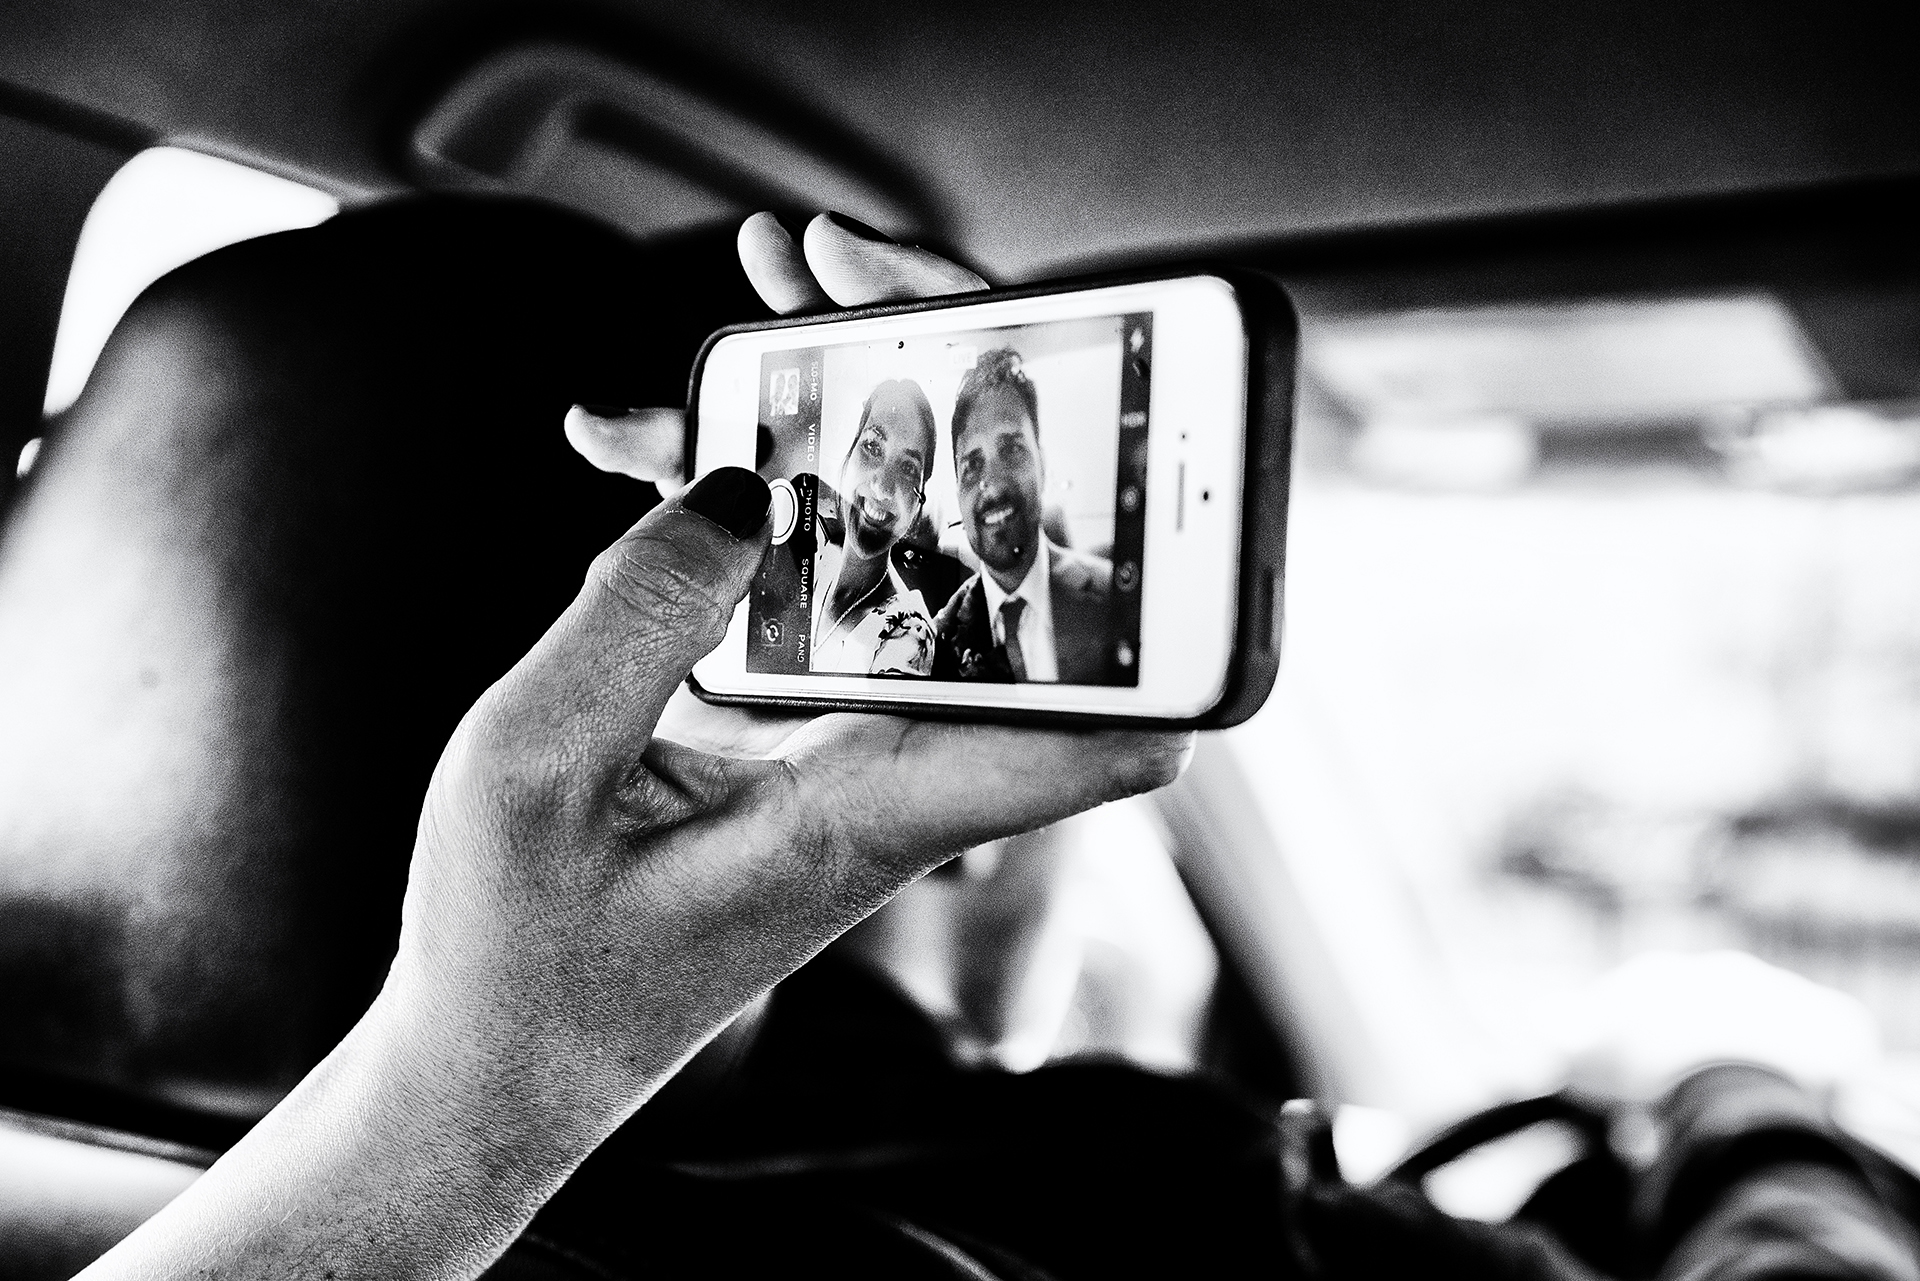 Brooklyn, Dumbo NYC Elopement Photos | In the cab, On their way to take their official wedding portraits